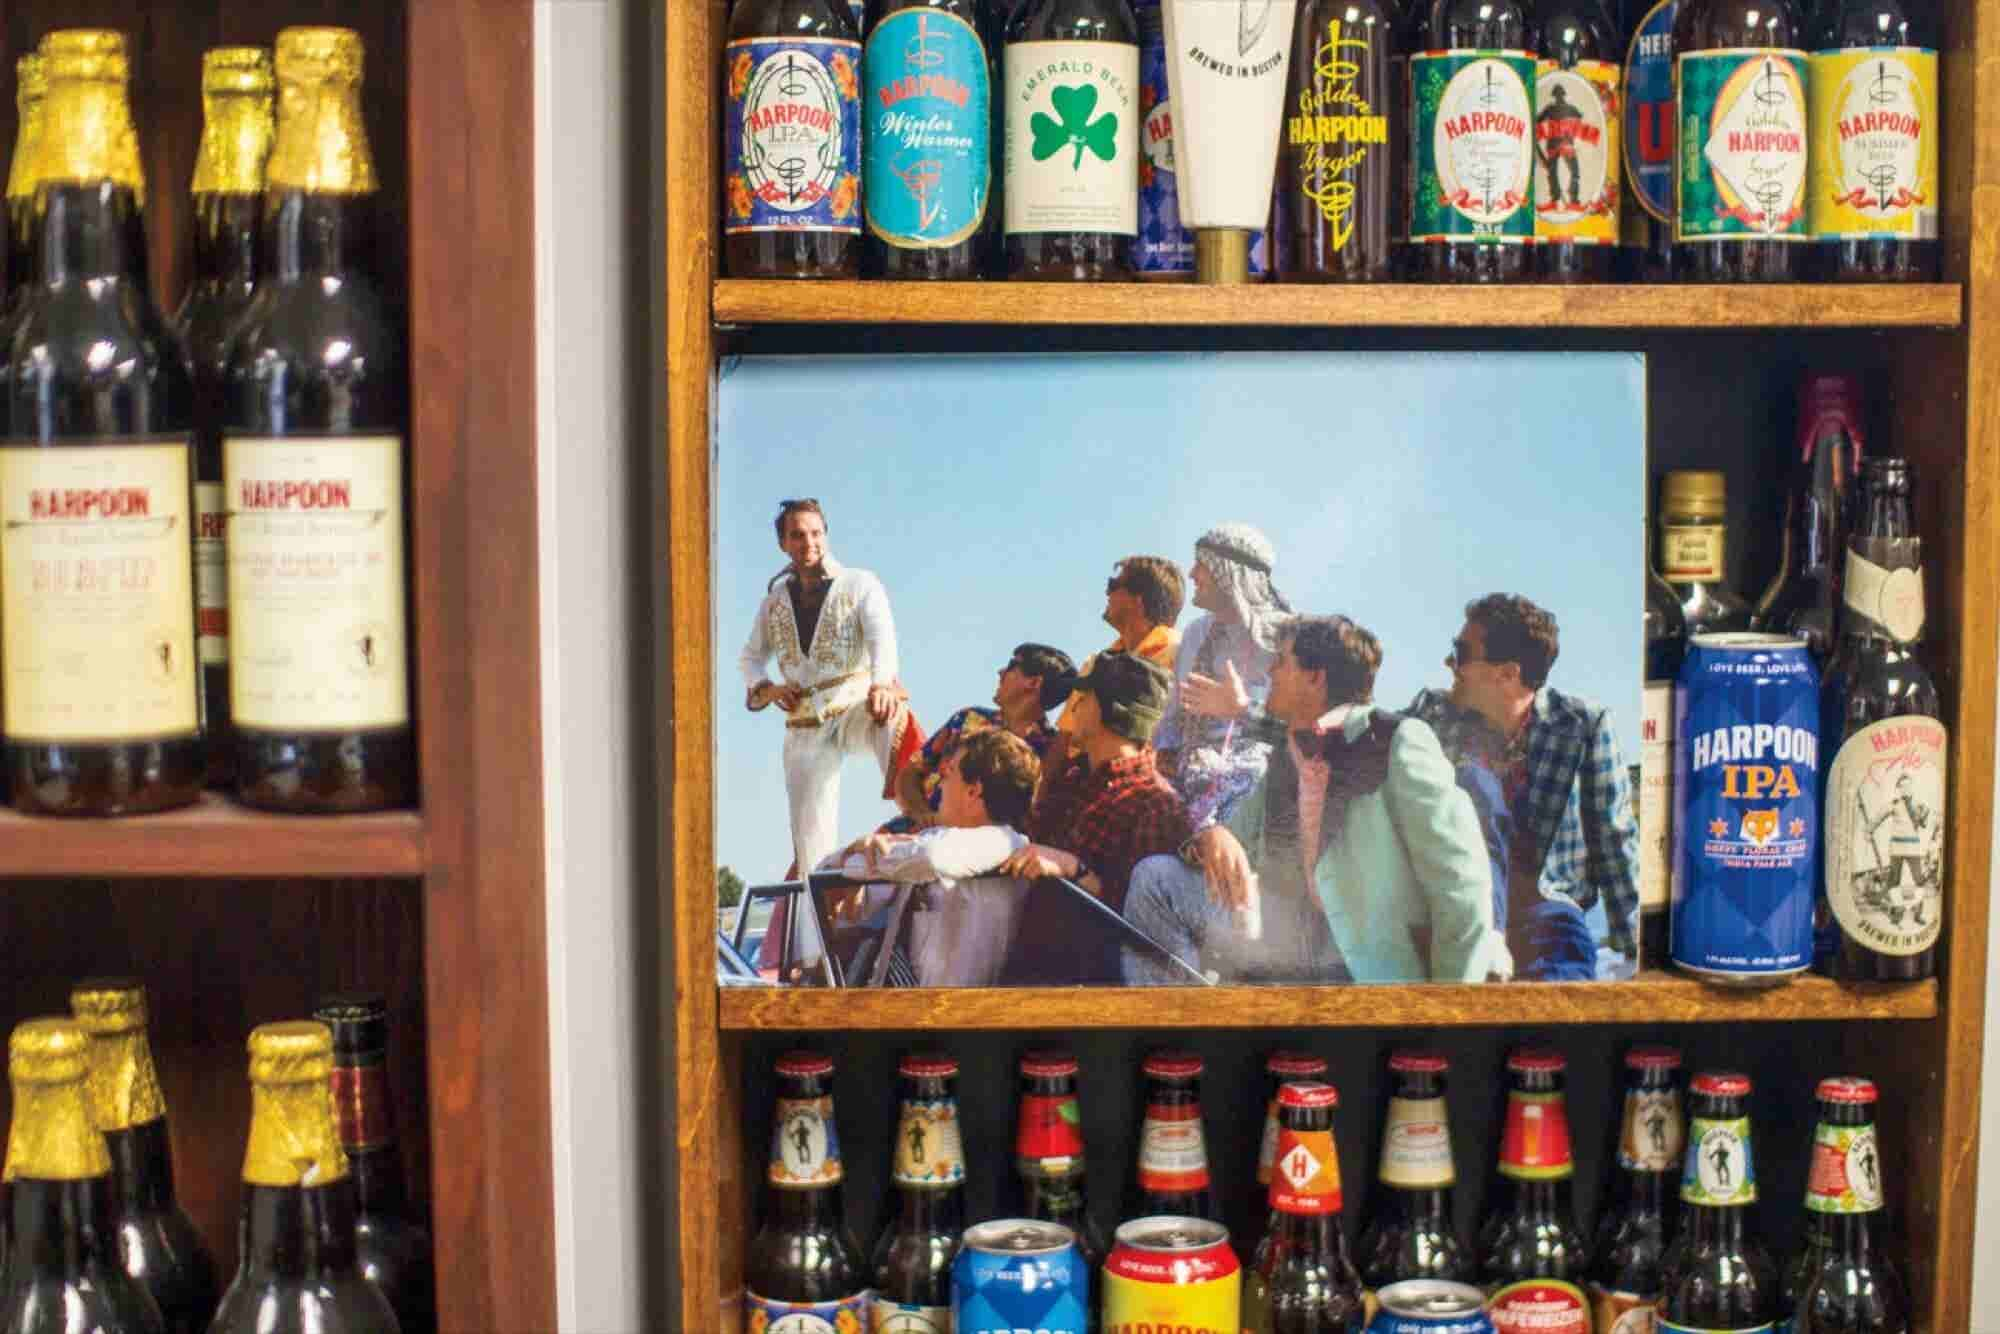 Cheers: How a Tight Knit Group of Fun-Loving Friends Motivates a Beer Pioneer